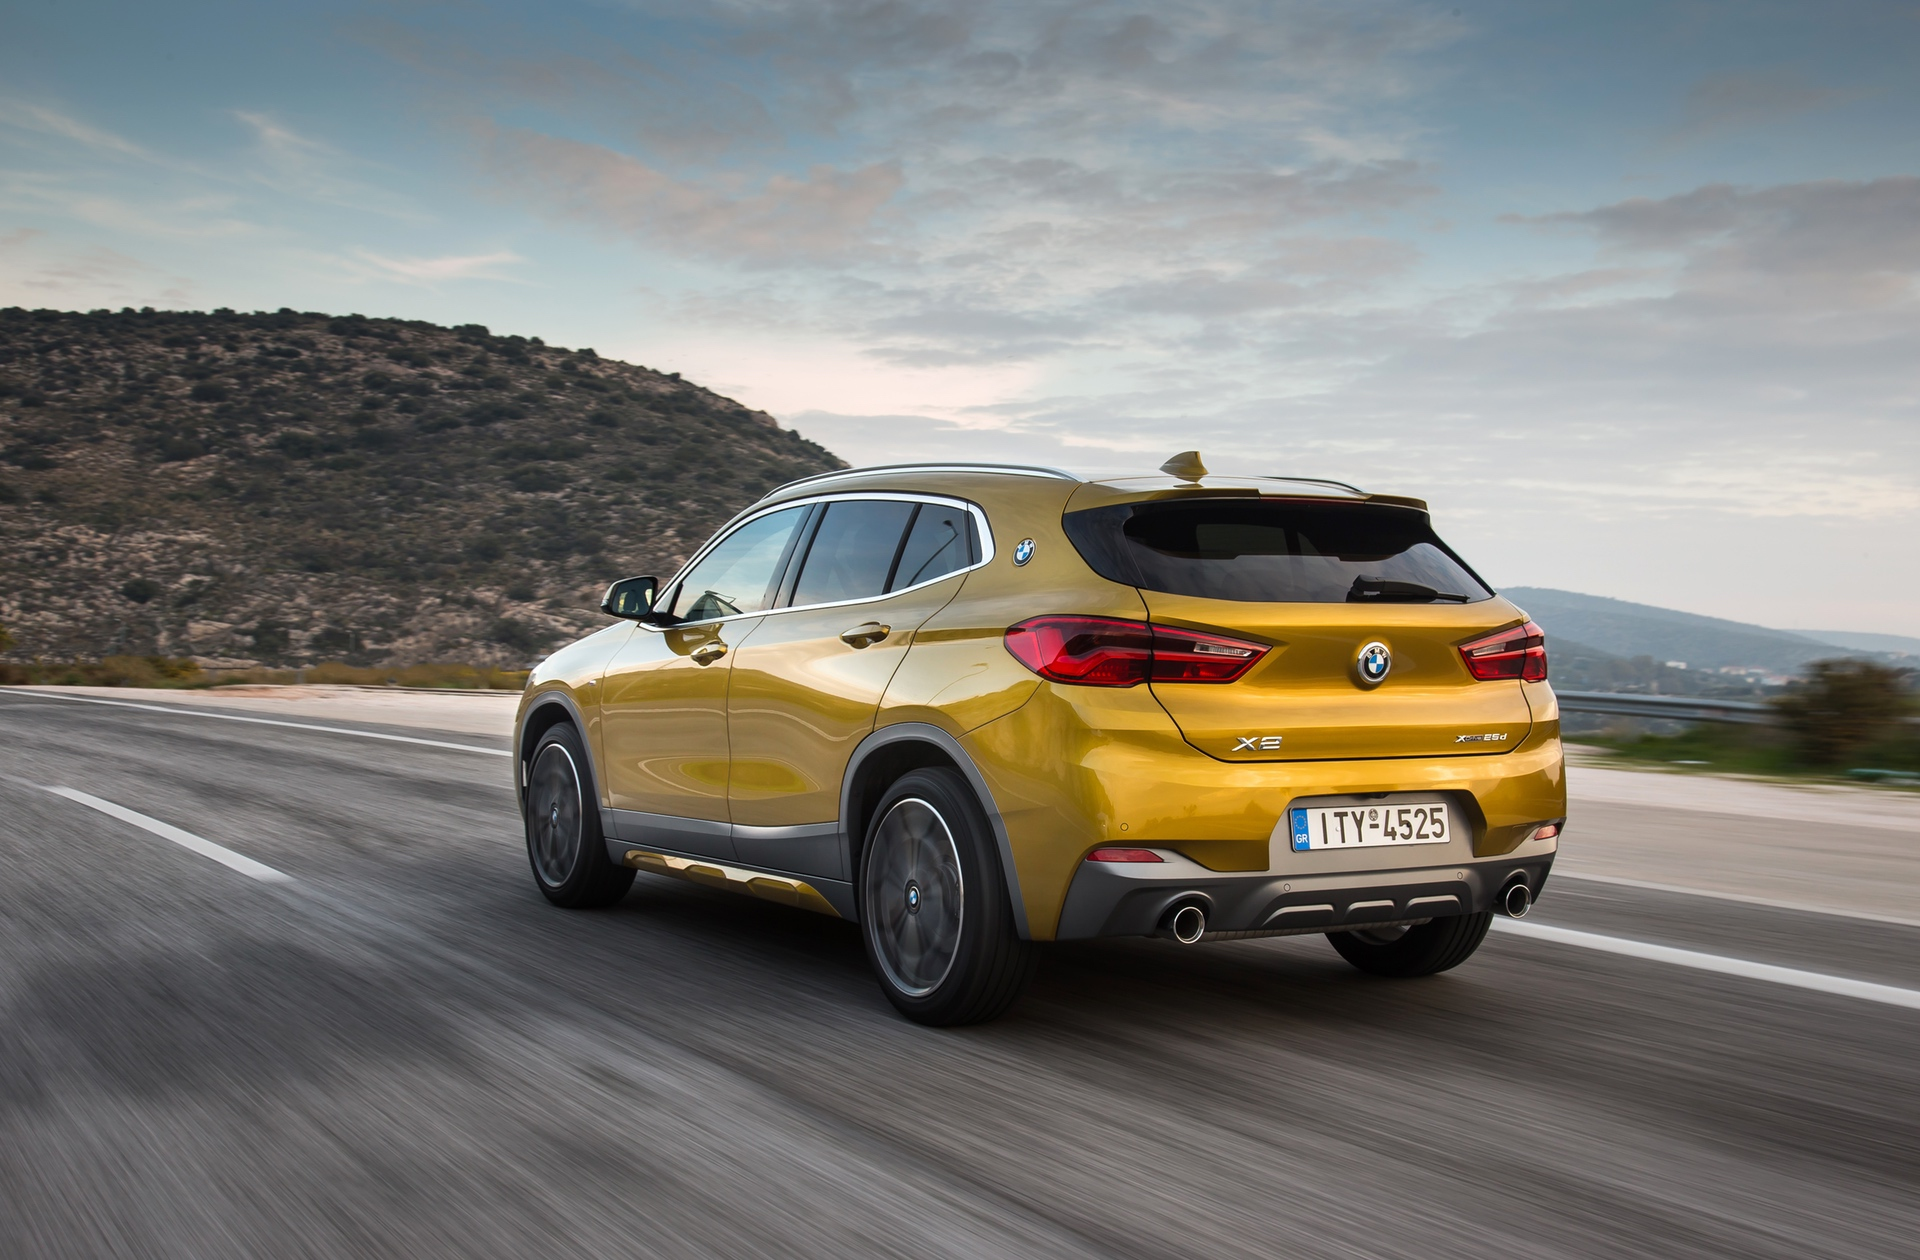 BMW_X2_Greek_presskit_0020